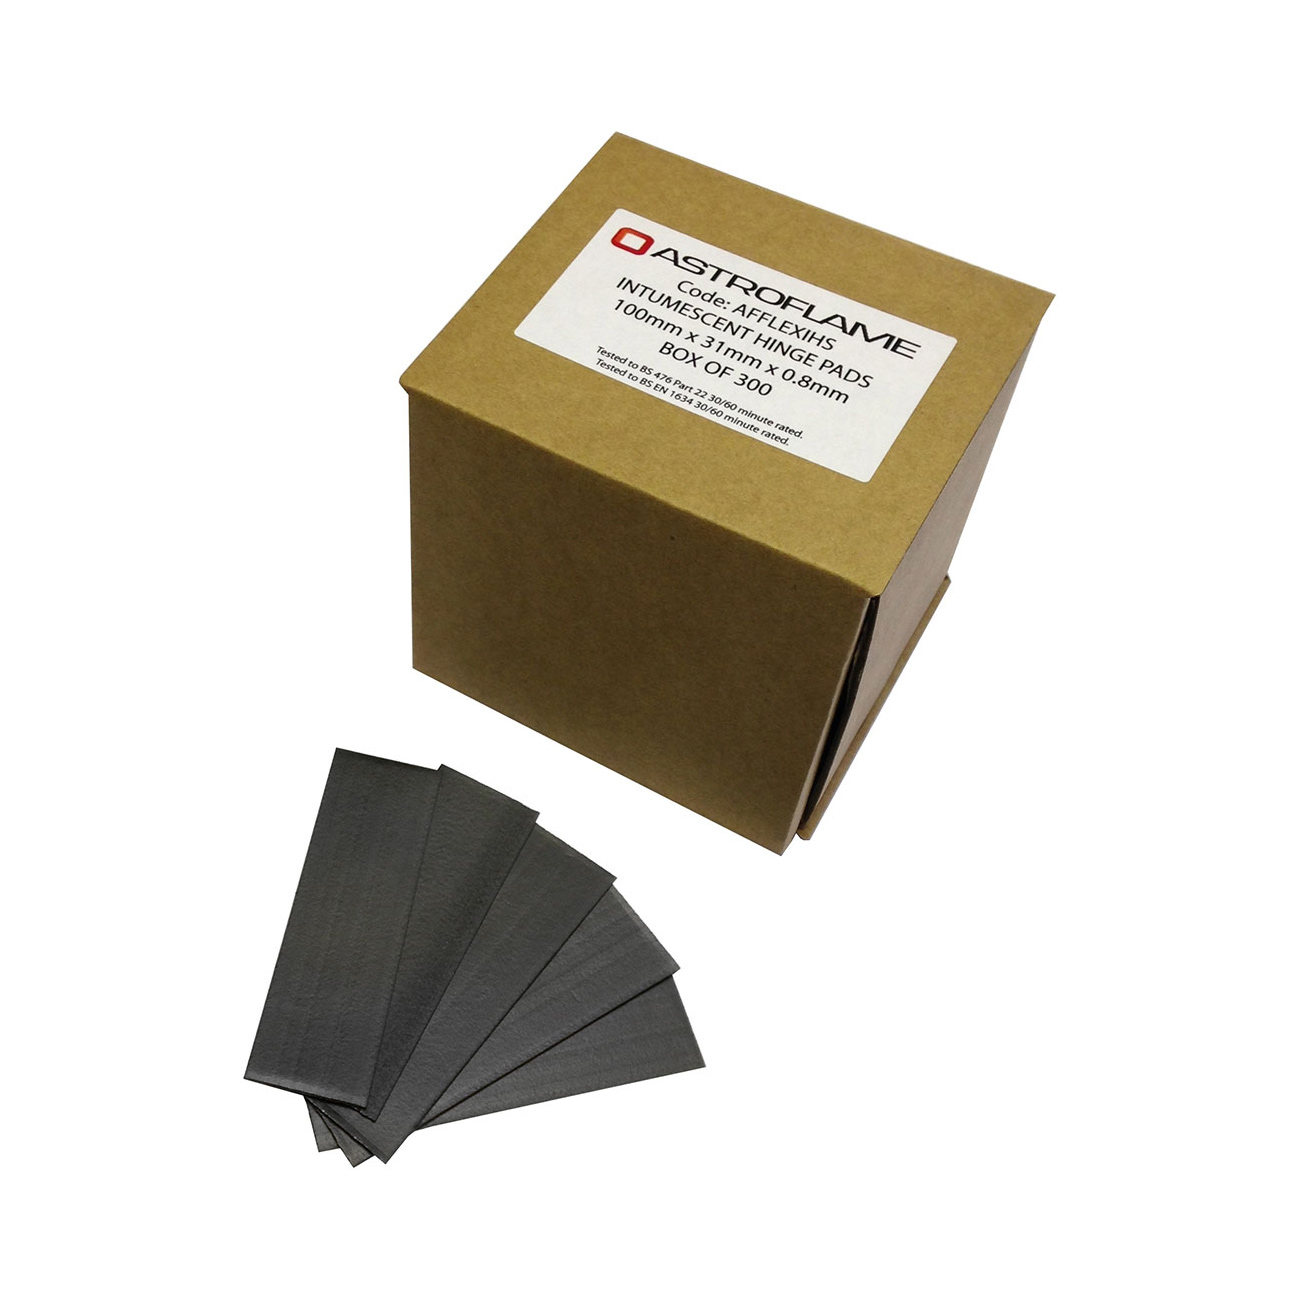 Box of 300 intumescent hinge pads with squared corners, with pads on a sample hinge (not included)